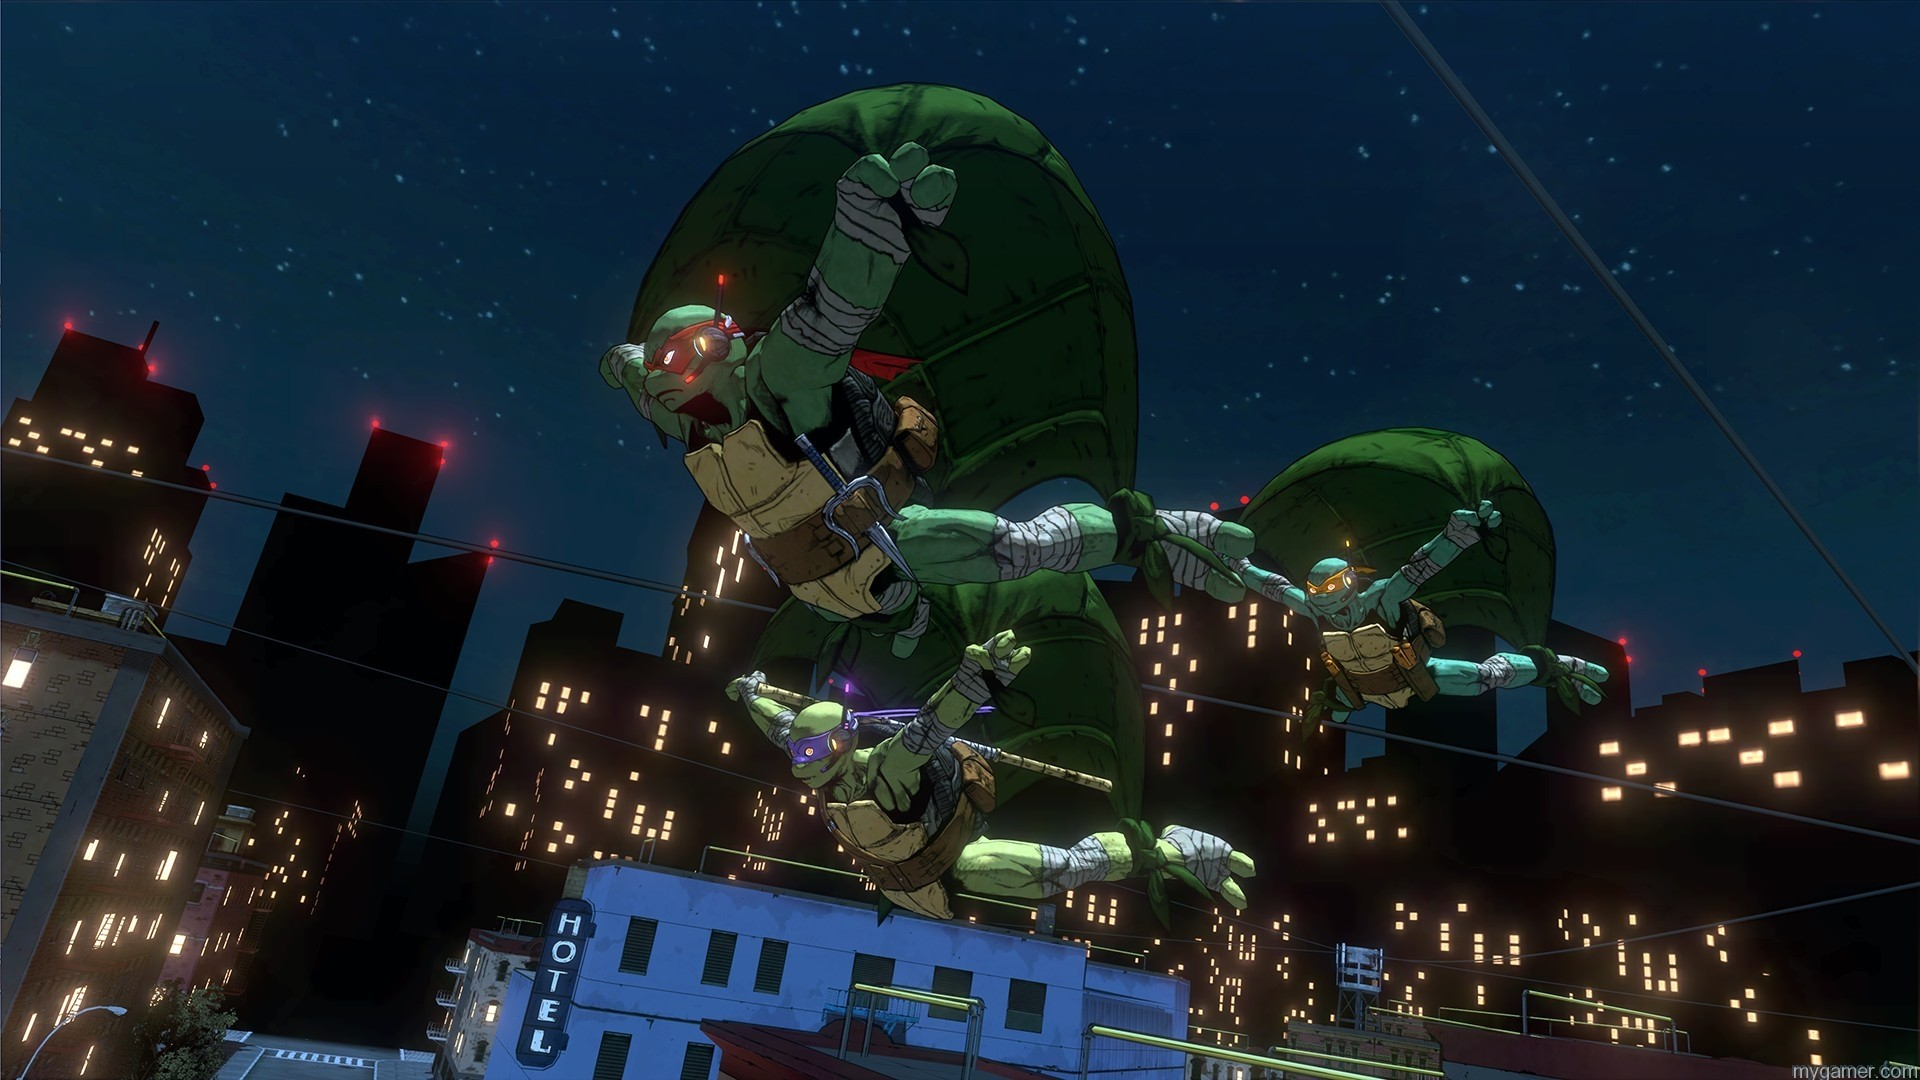 TMNT - MiM Screens 05 TMNT: Mutants In Manhattan Now Available - Discounted on Last Gens TMNT: Mutants In Manhattan Now Available – Discounted on Last Gens TMNT MiM Screens 05